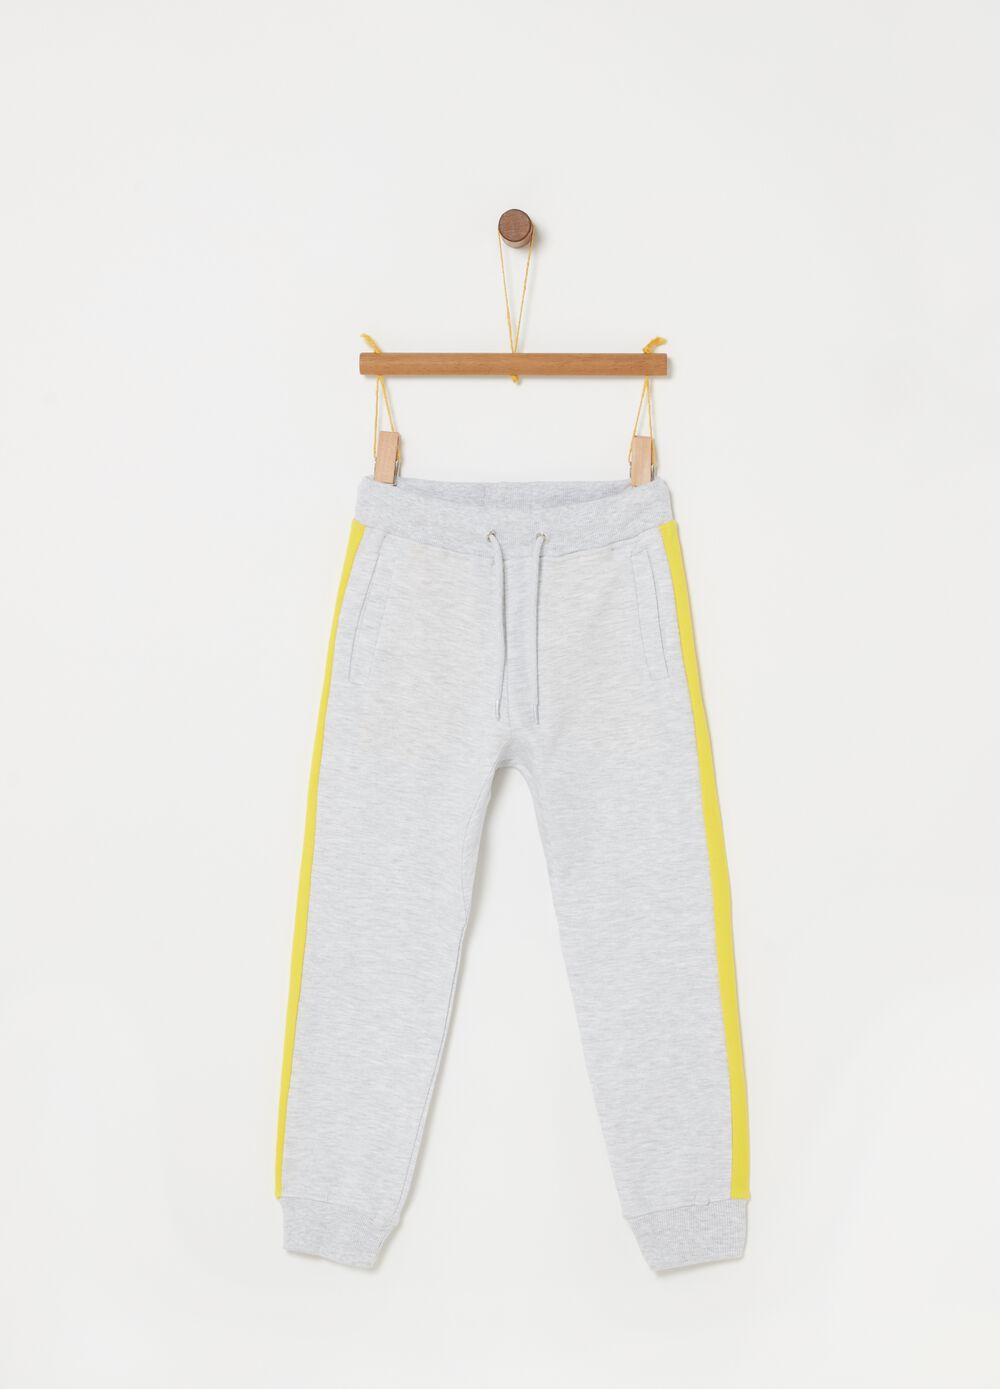 Everlast mélange trousers with pockets